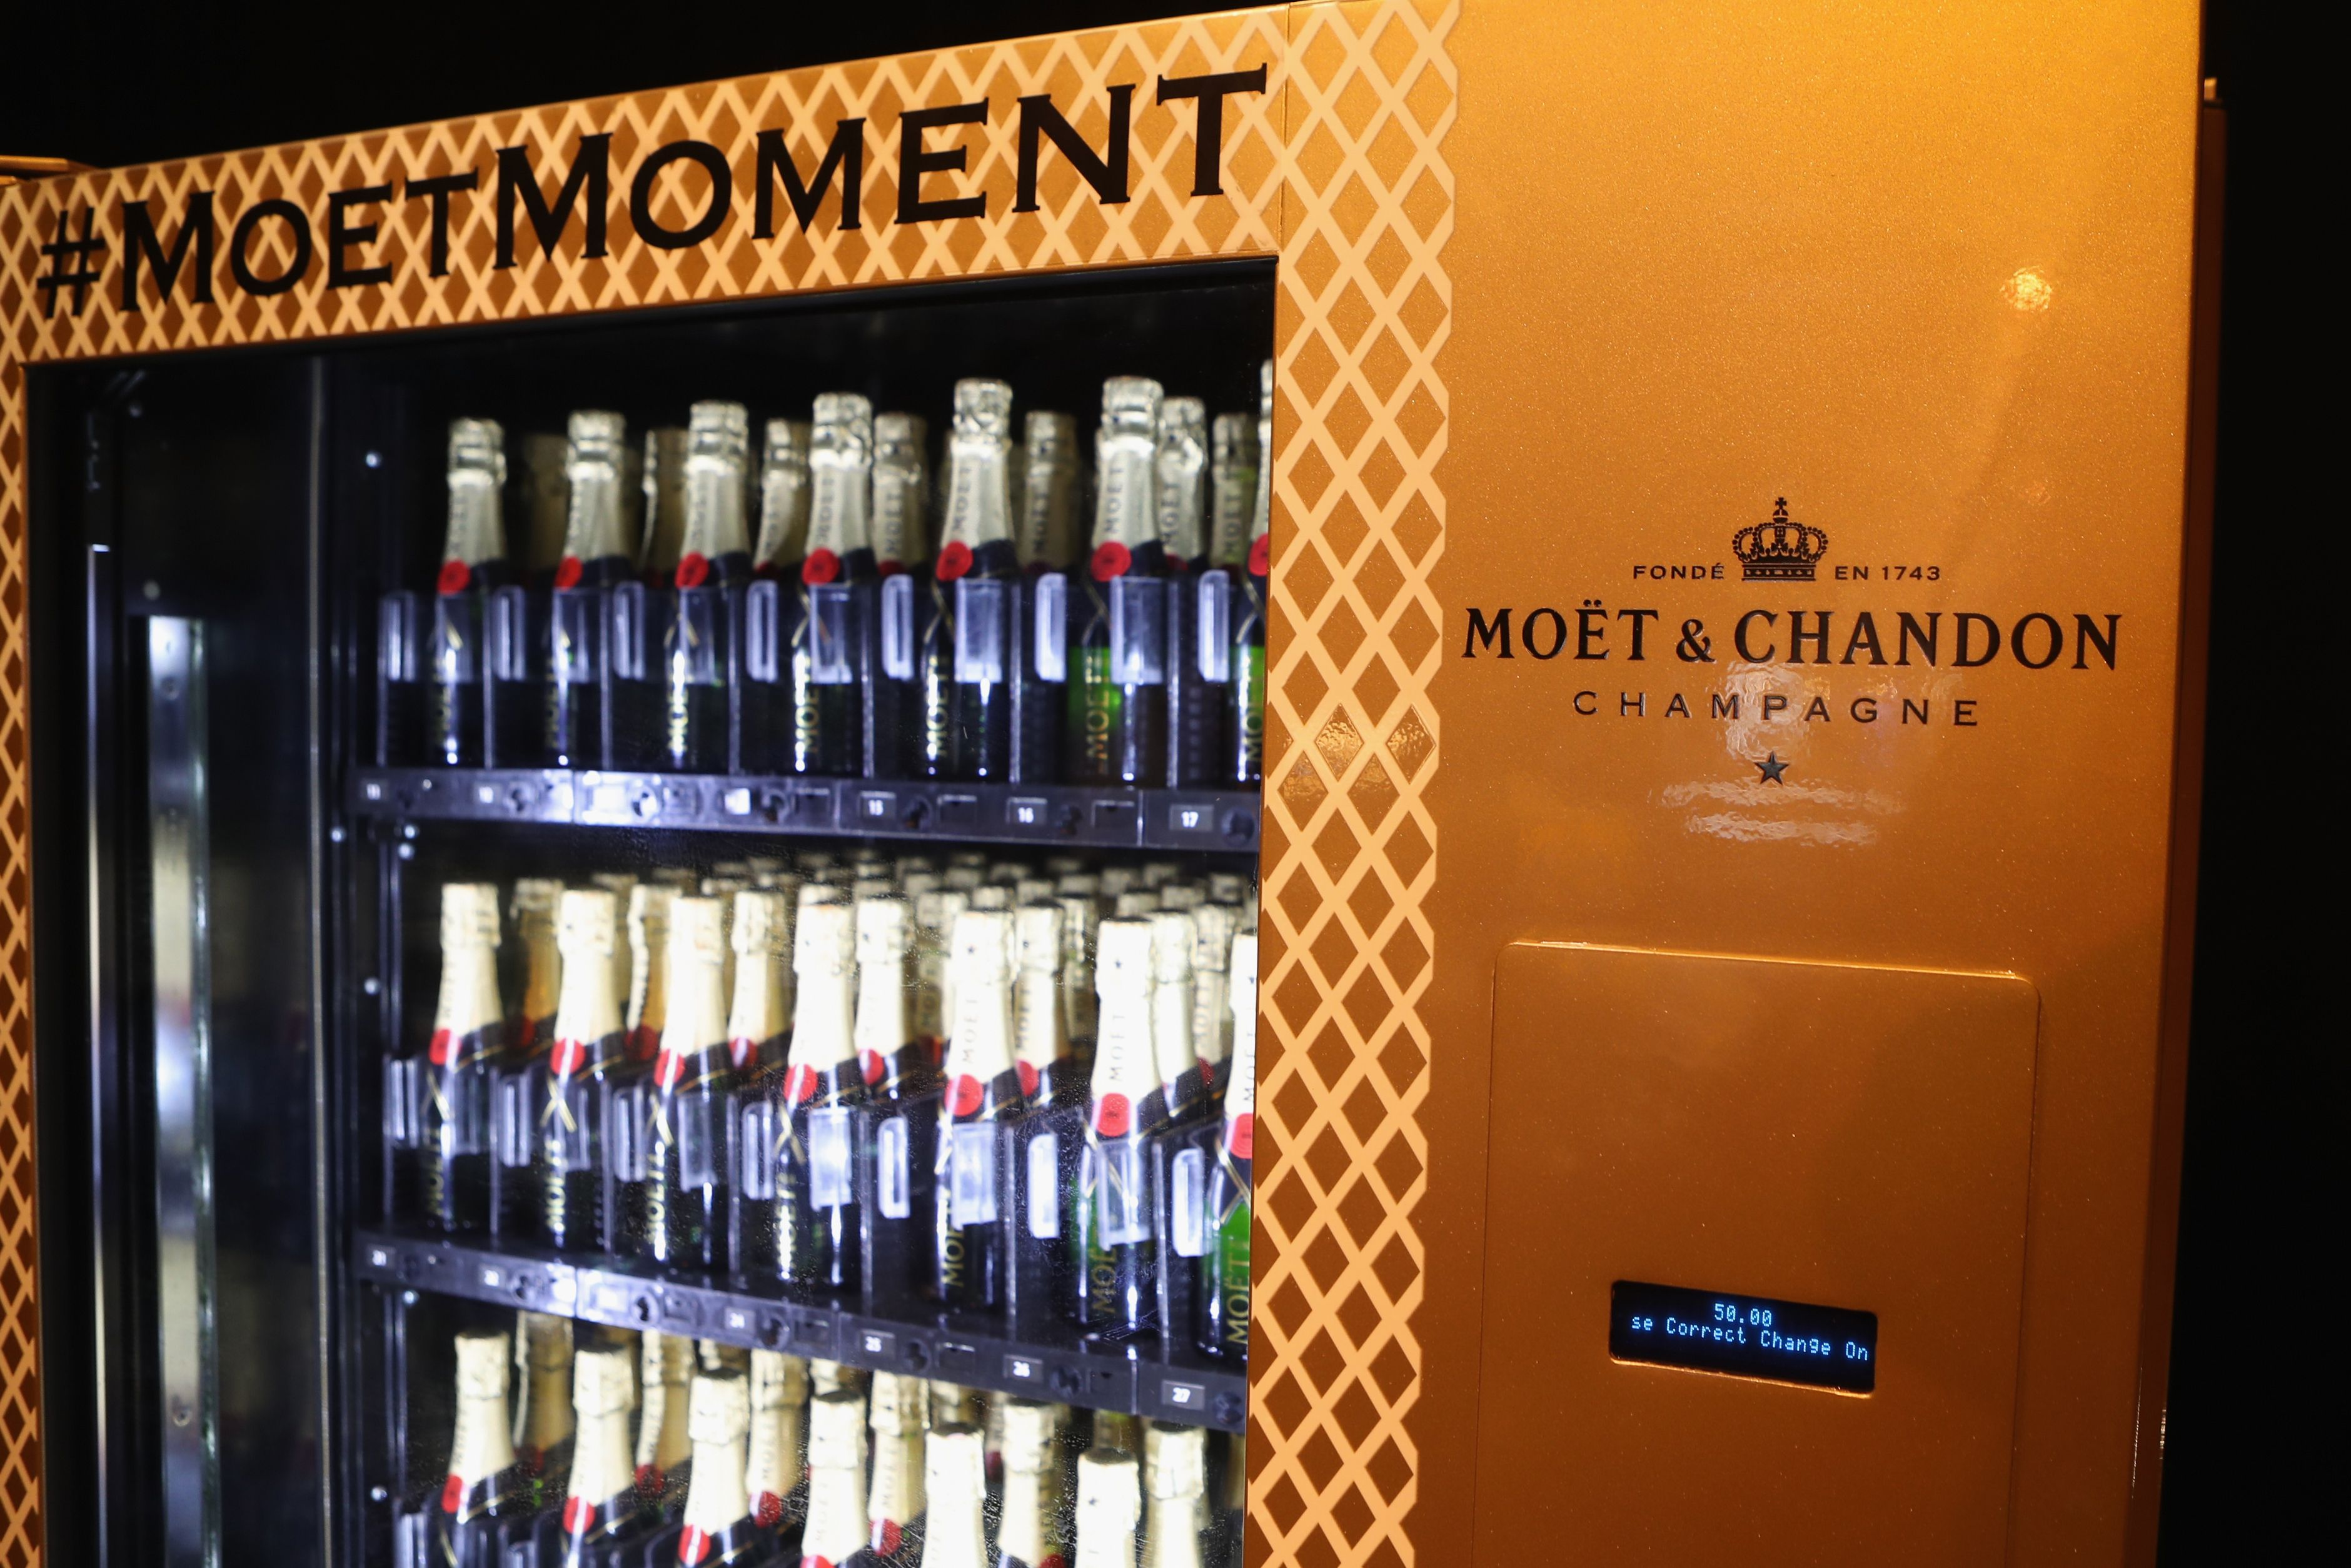 A Moët & Chandon Champagne Vending Machine Has Arrived in New York